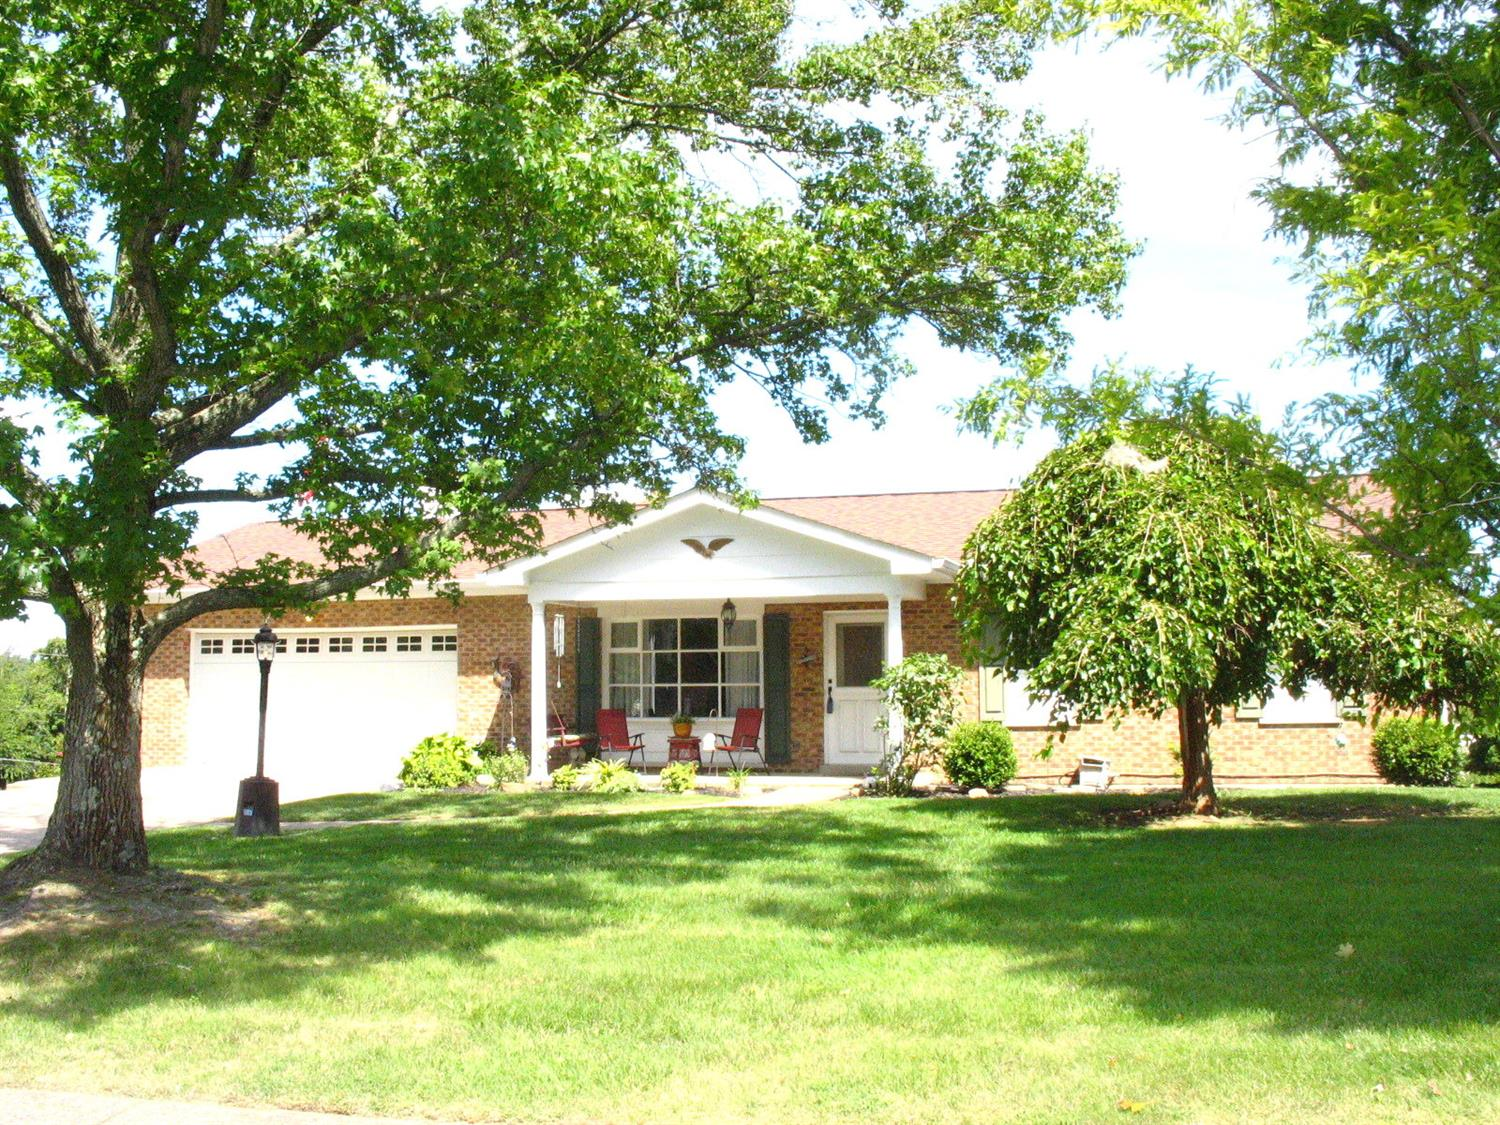 Photo 1 for 11977 Cadillac Dr Independence, KY 41051